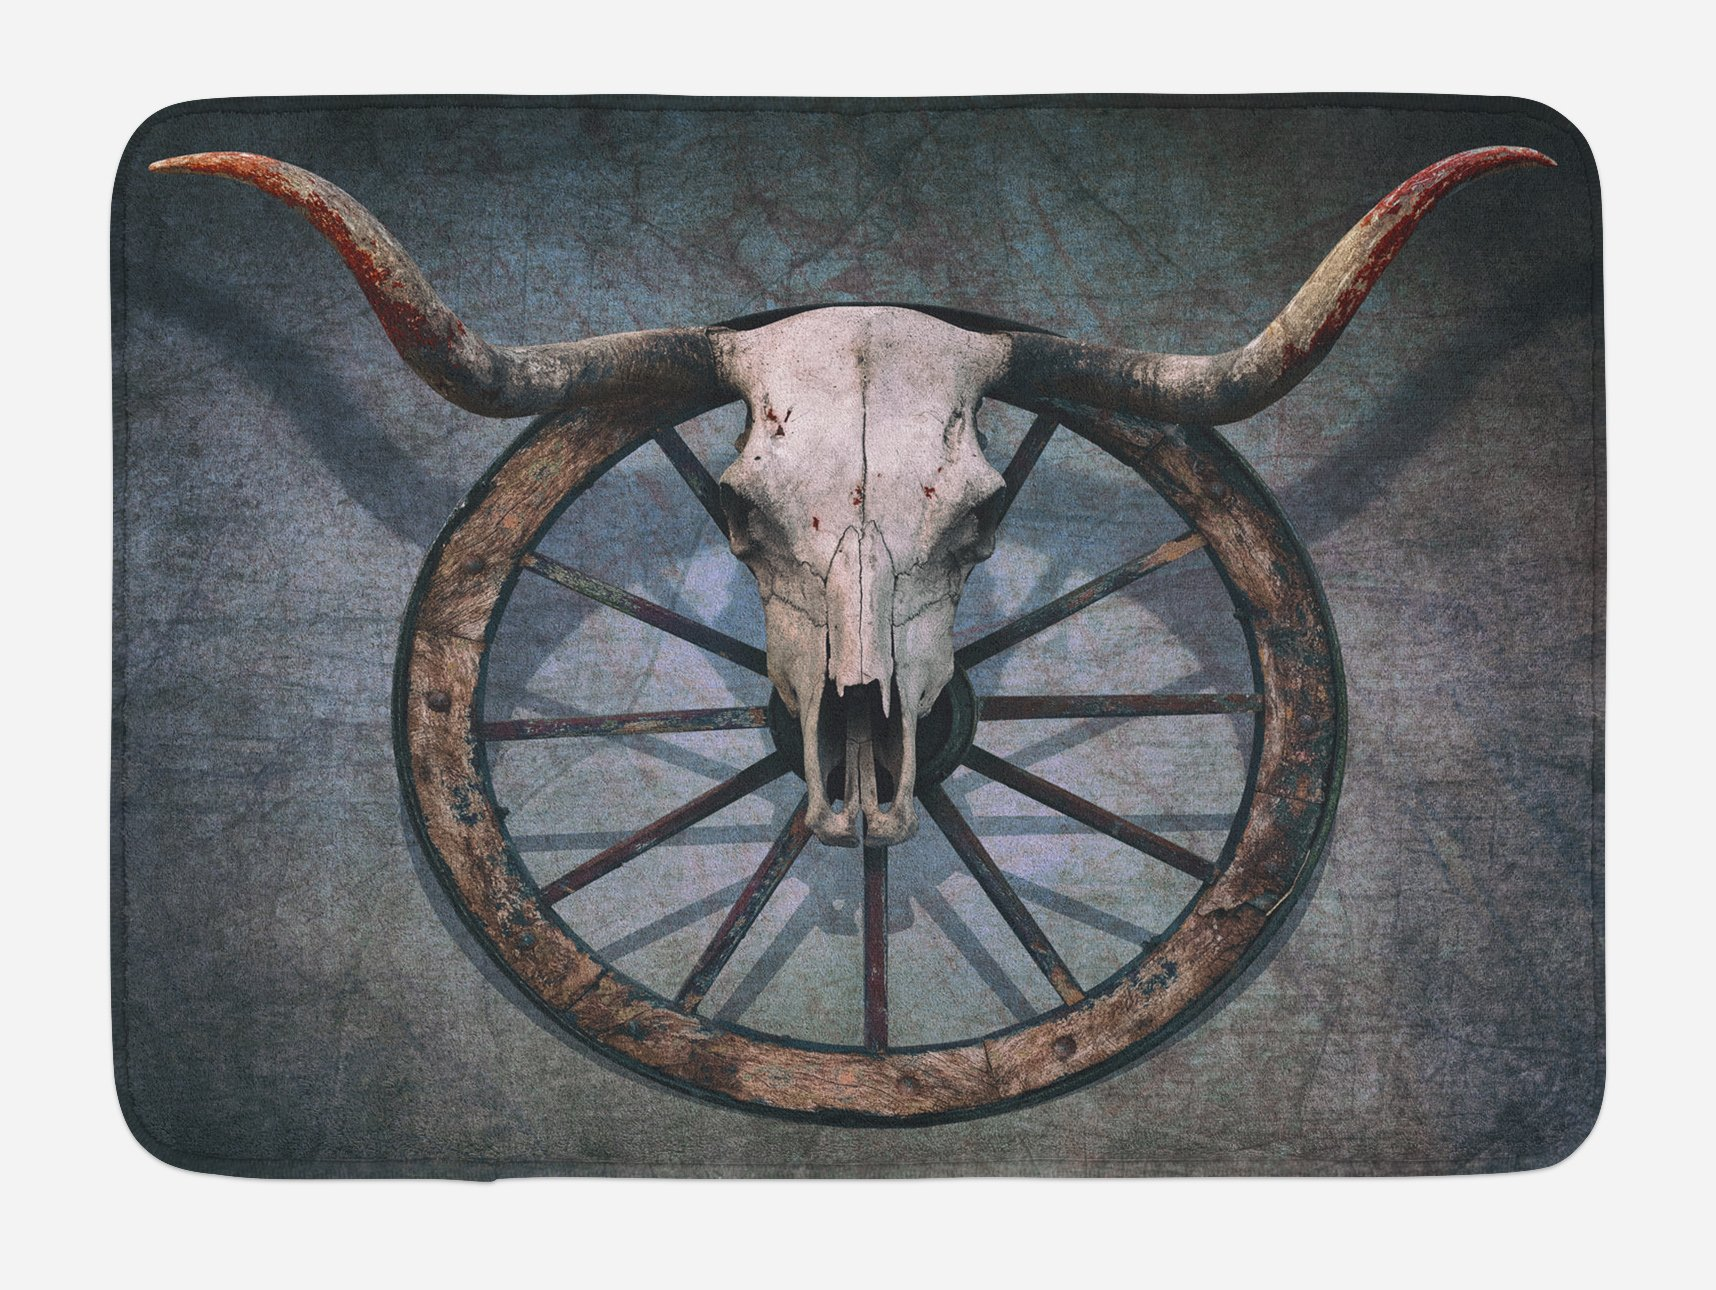 Ambesonne Barn Wood Wagon Wheel Bath Mat, Wild West Themed Design with Bull Skull on Cart Wheel Scratched Wall, Plush Bathroom Decor Mat with Non Slip Backing, 29.5 W X 17.5 W Inches, Multicolor